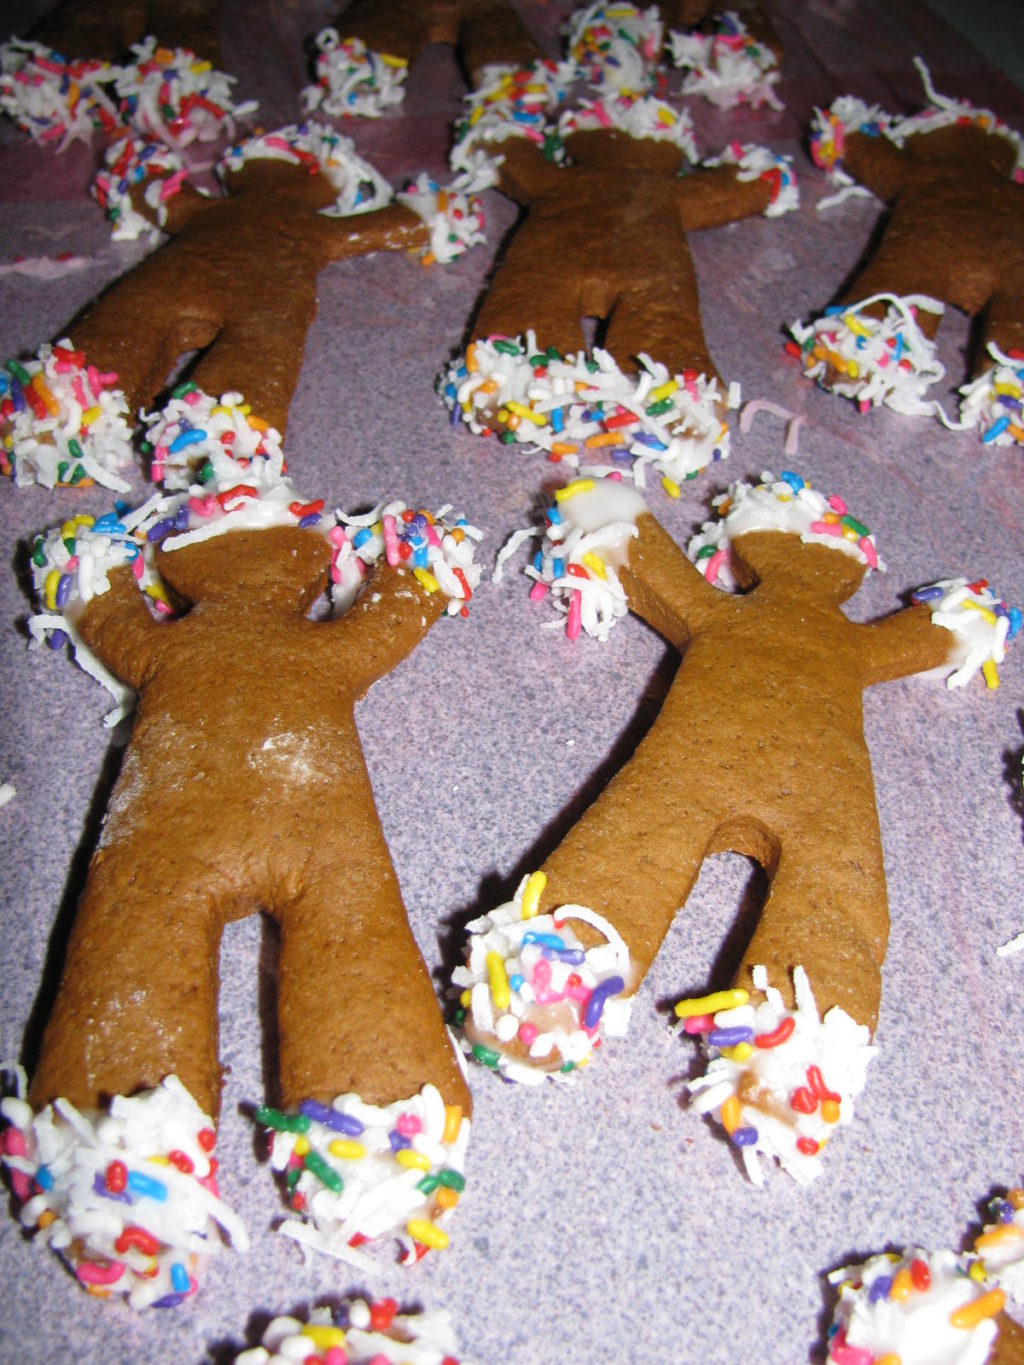 It's time to make Gingerbread Men! Here's the recipe and decorating recipes. Tasty, fun to make and little ones love them! #gingerbread #Christmas #recipe